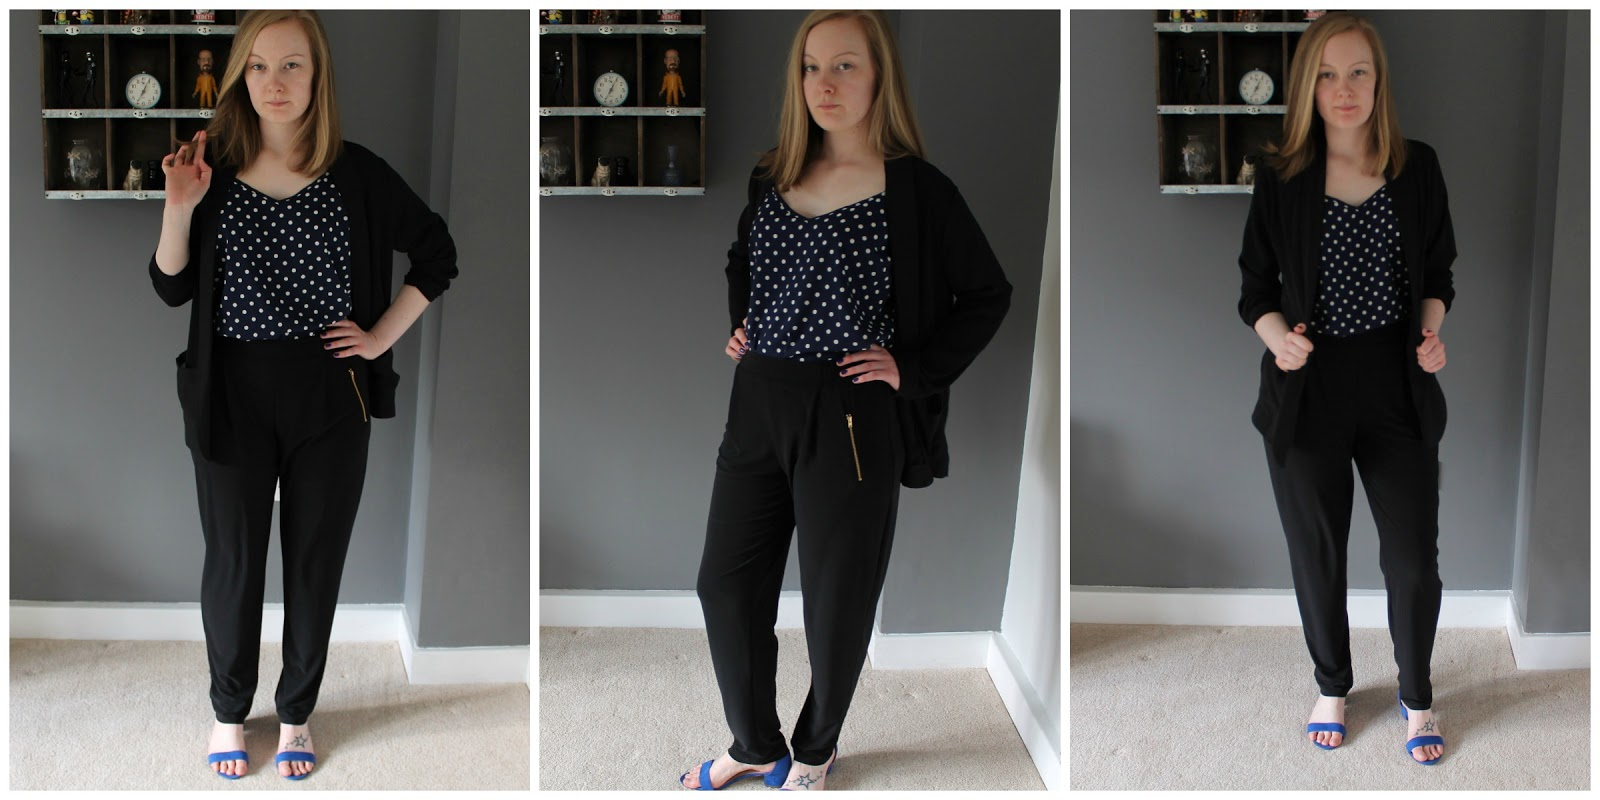 Work Spring Capsule Wardrobe with George at ASDA